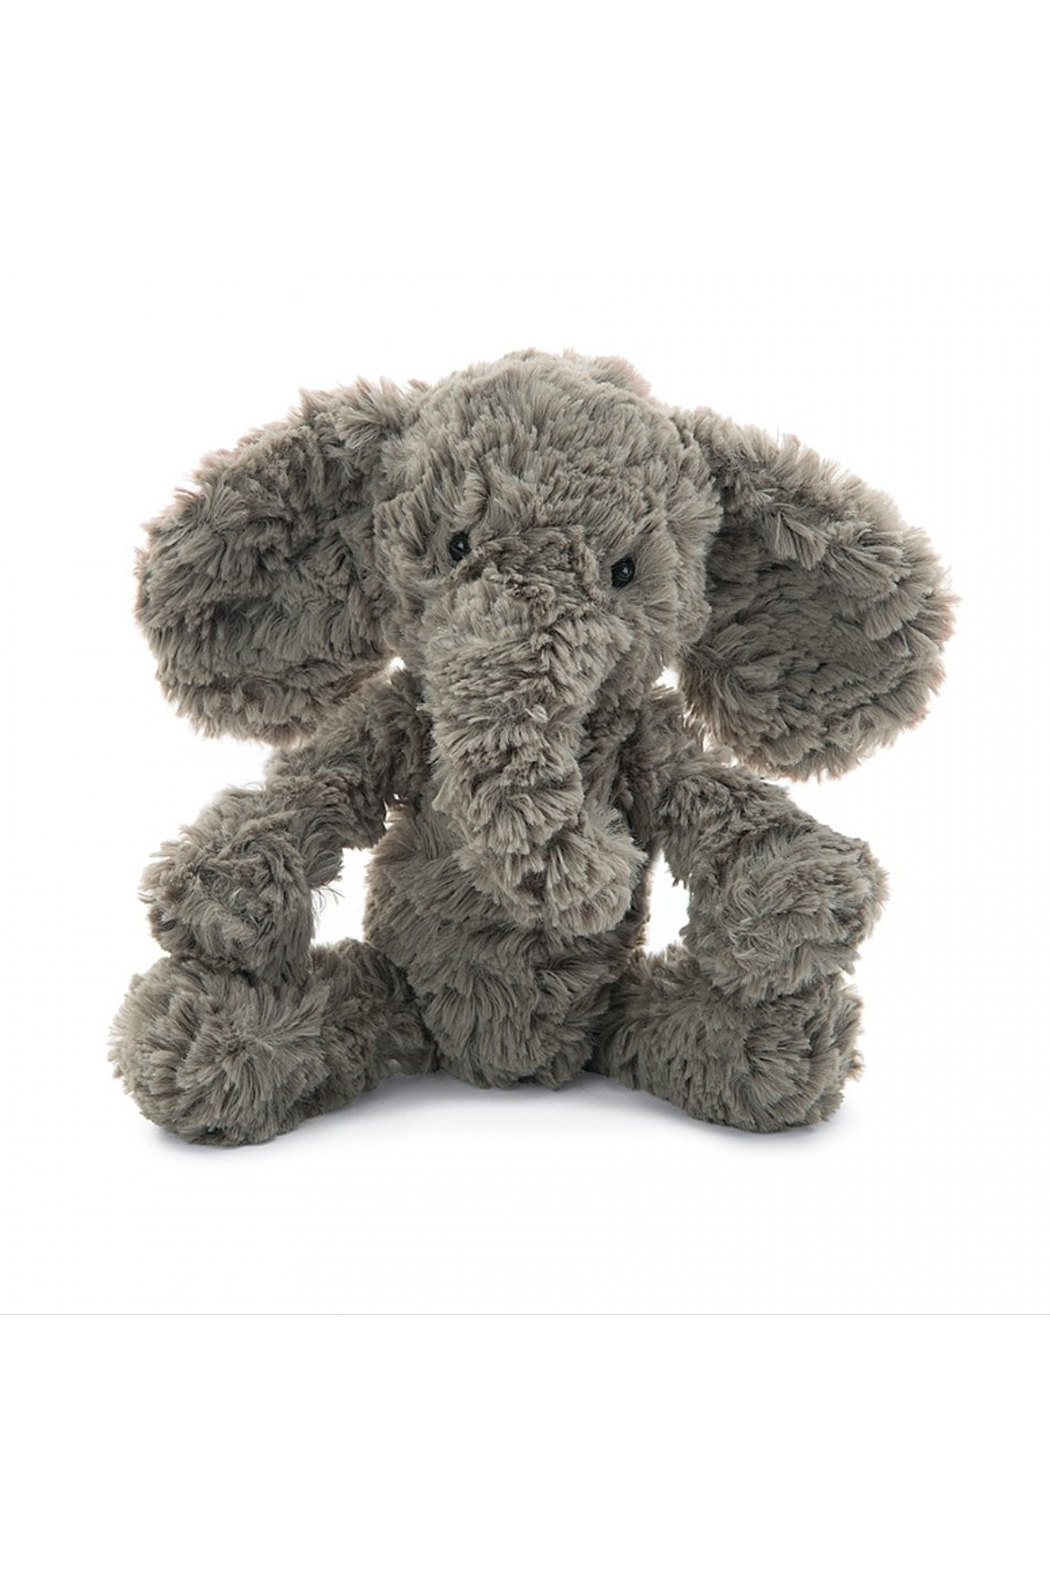 Jellycat Squiggles Elephant - Main Image